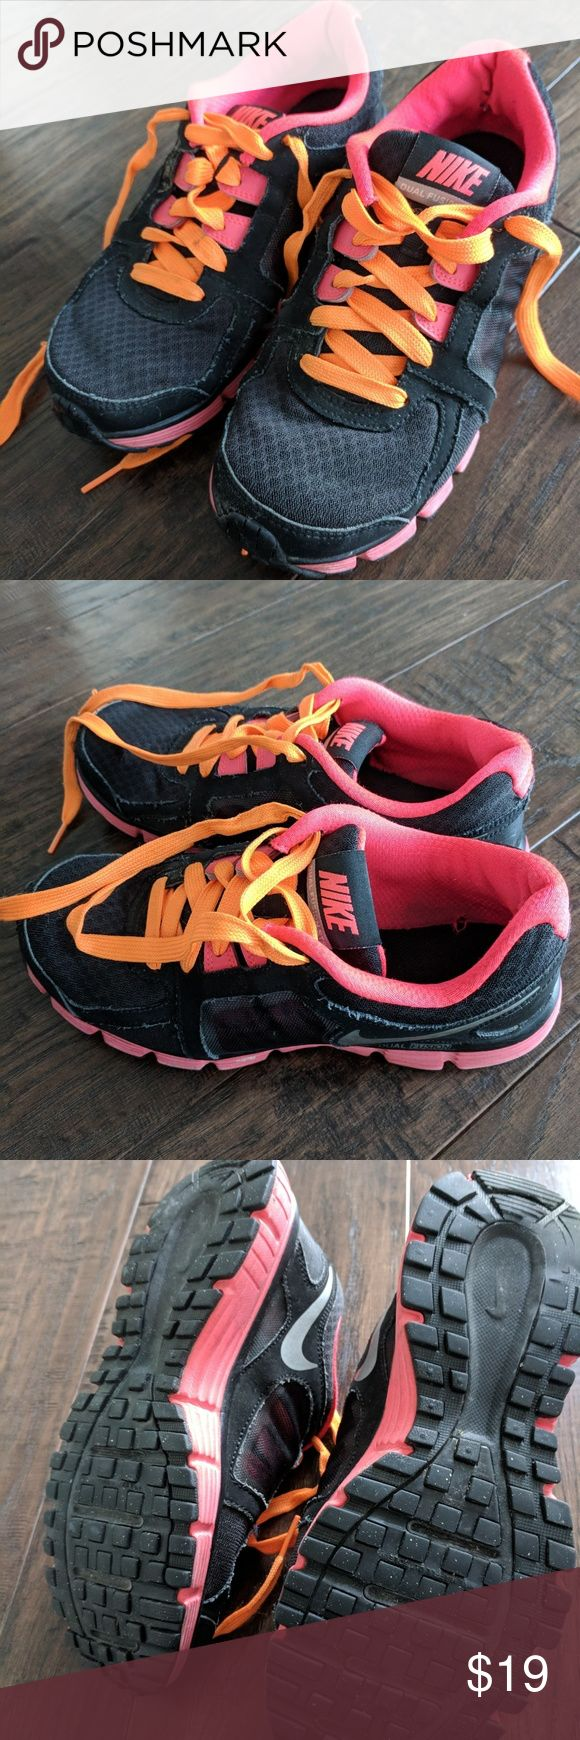 Nike Dual Fusion Sneakers size 7 Gently worn - Black with orange.  Size 7.  Small hole in the lining of the left shoe.  Still have lots of wear left to them... Nike Shoes Athletic Shoes